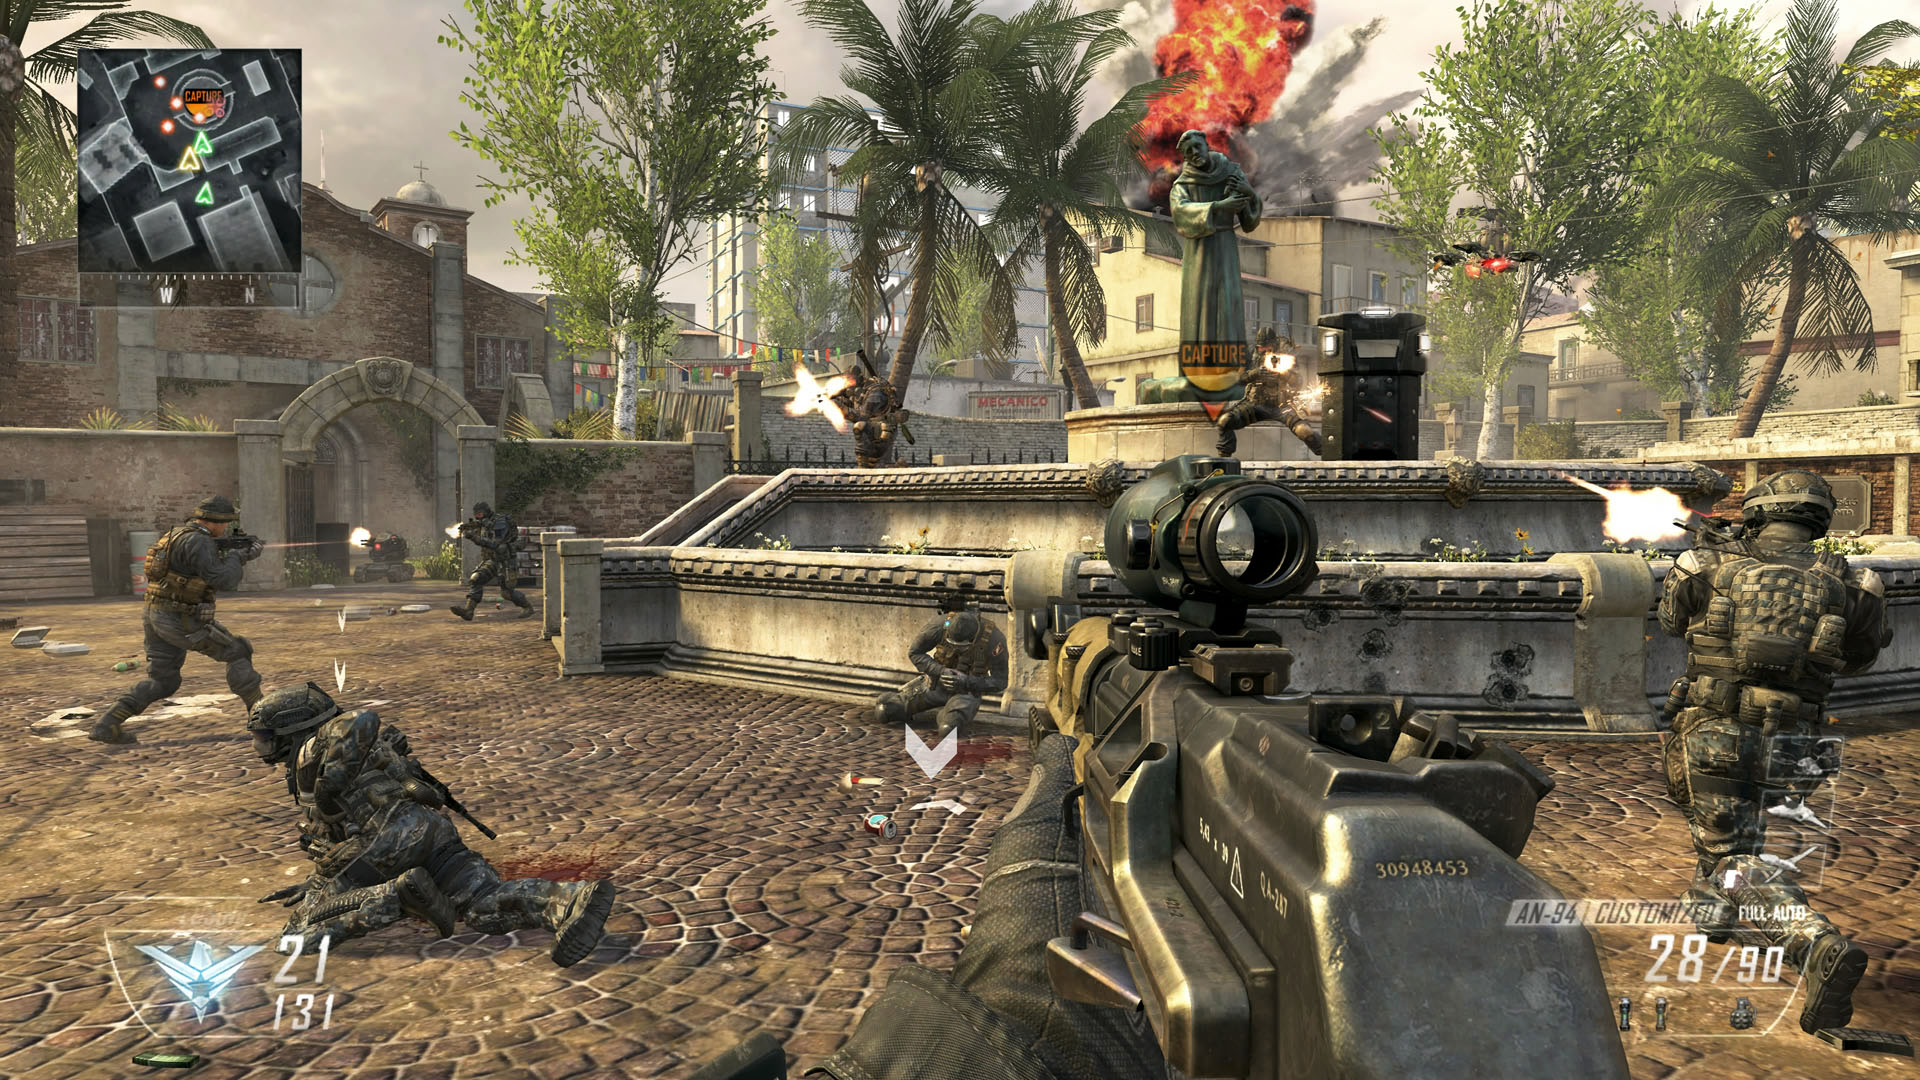 black ops zombie maps ps3 with Call Of Duty Black Ops 2 Review Future Shock on  additionally 21087 How Download Paint Jobs Call Duty Black Ops Iii additionally Call Of Duty Black Ops 2 Review Future Shock moreover Watch together with The Best Zombie Themed Games.